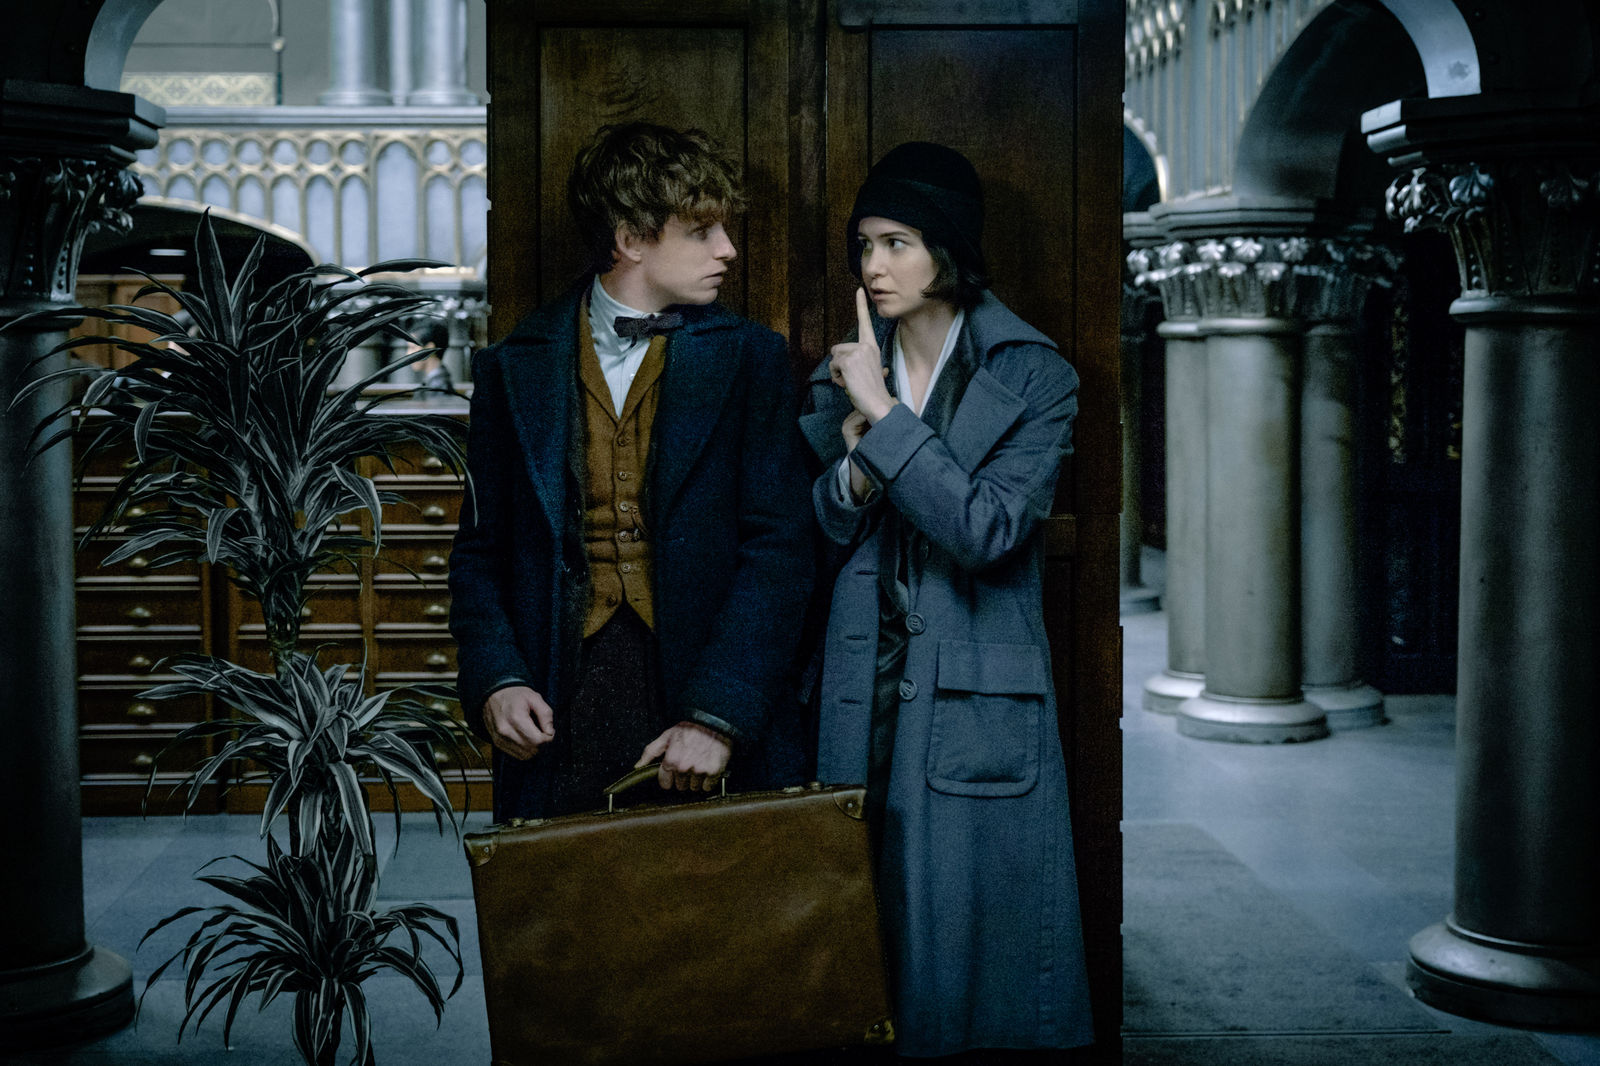 fantastic-beasts-and-where-to-find-them-463827l-1600x1200-n-cf1ad981